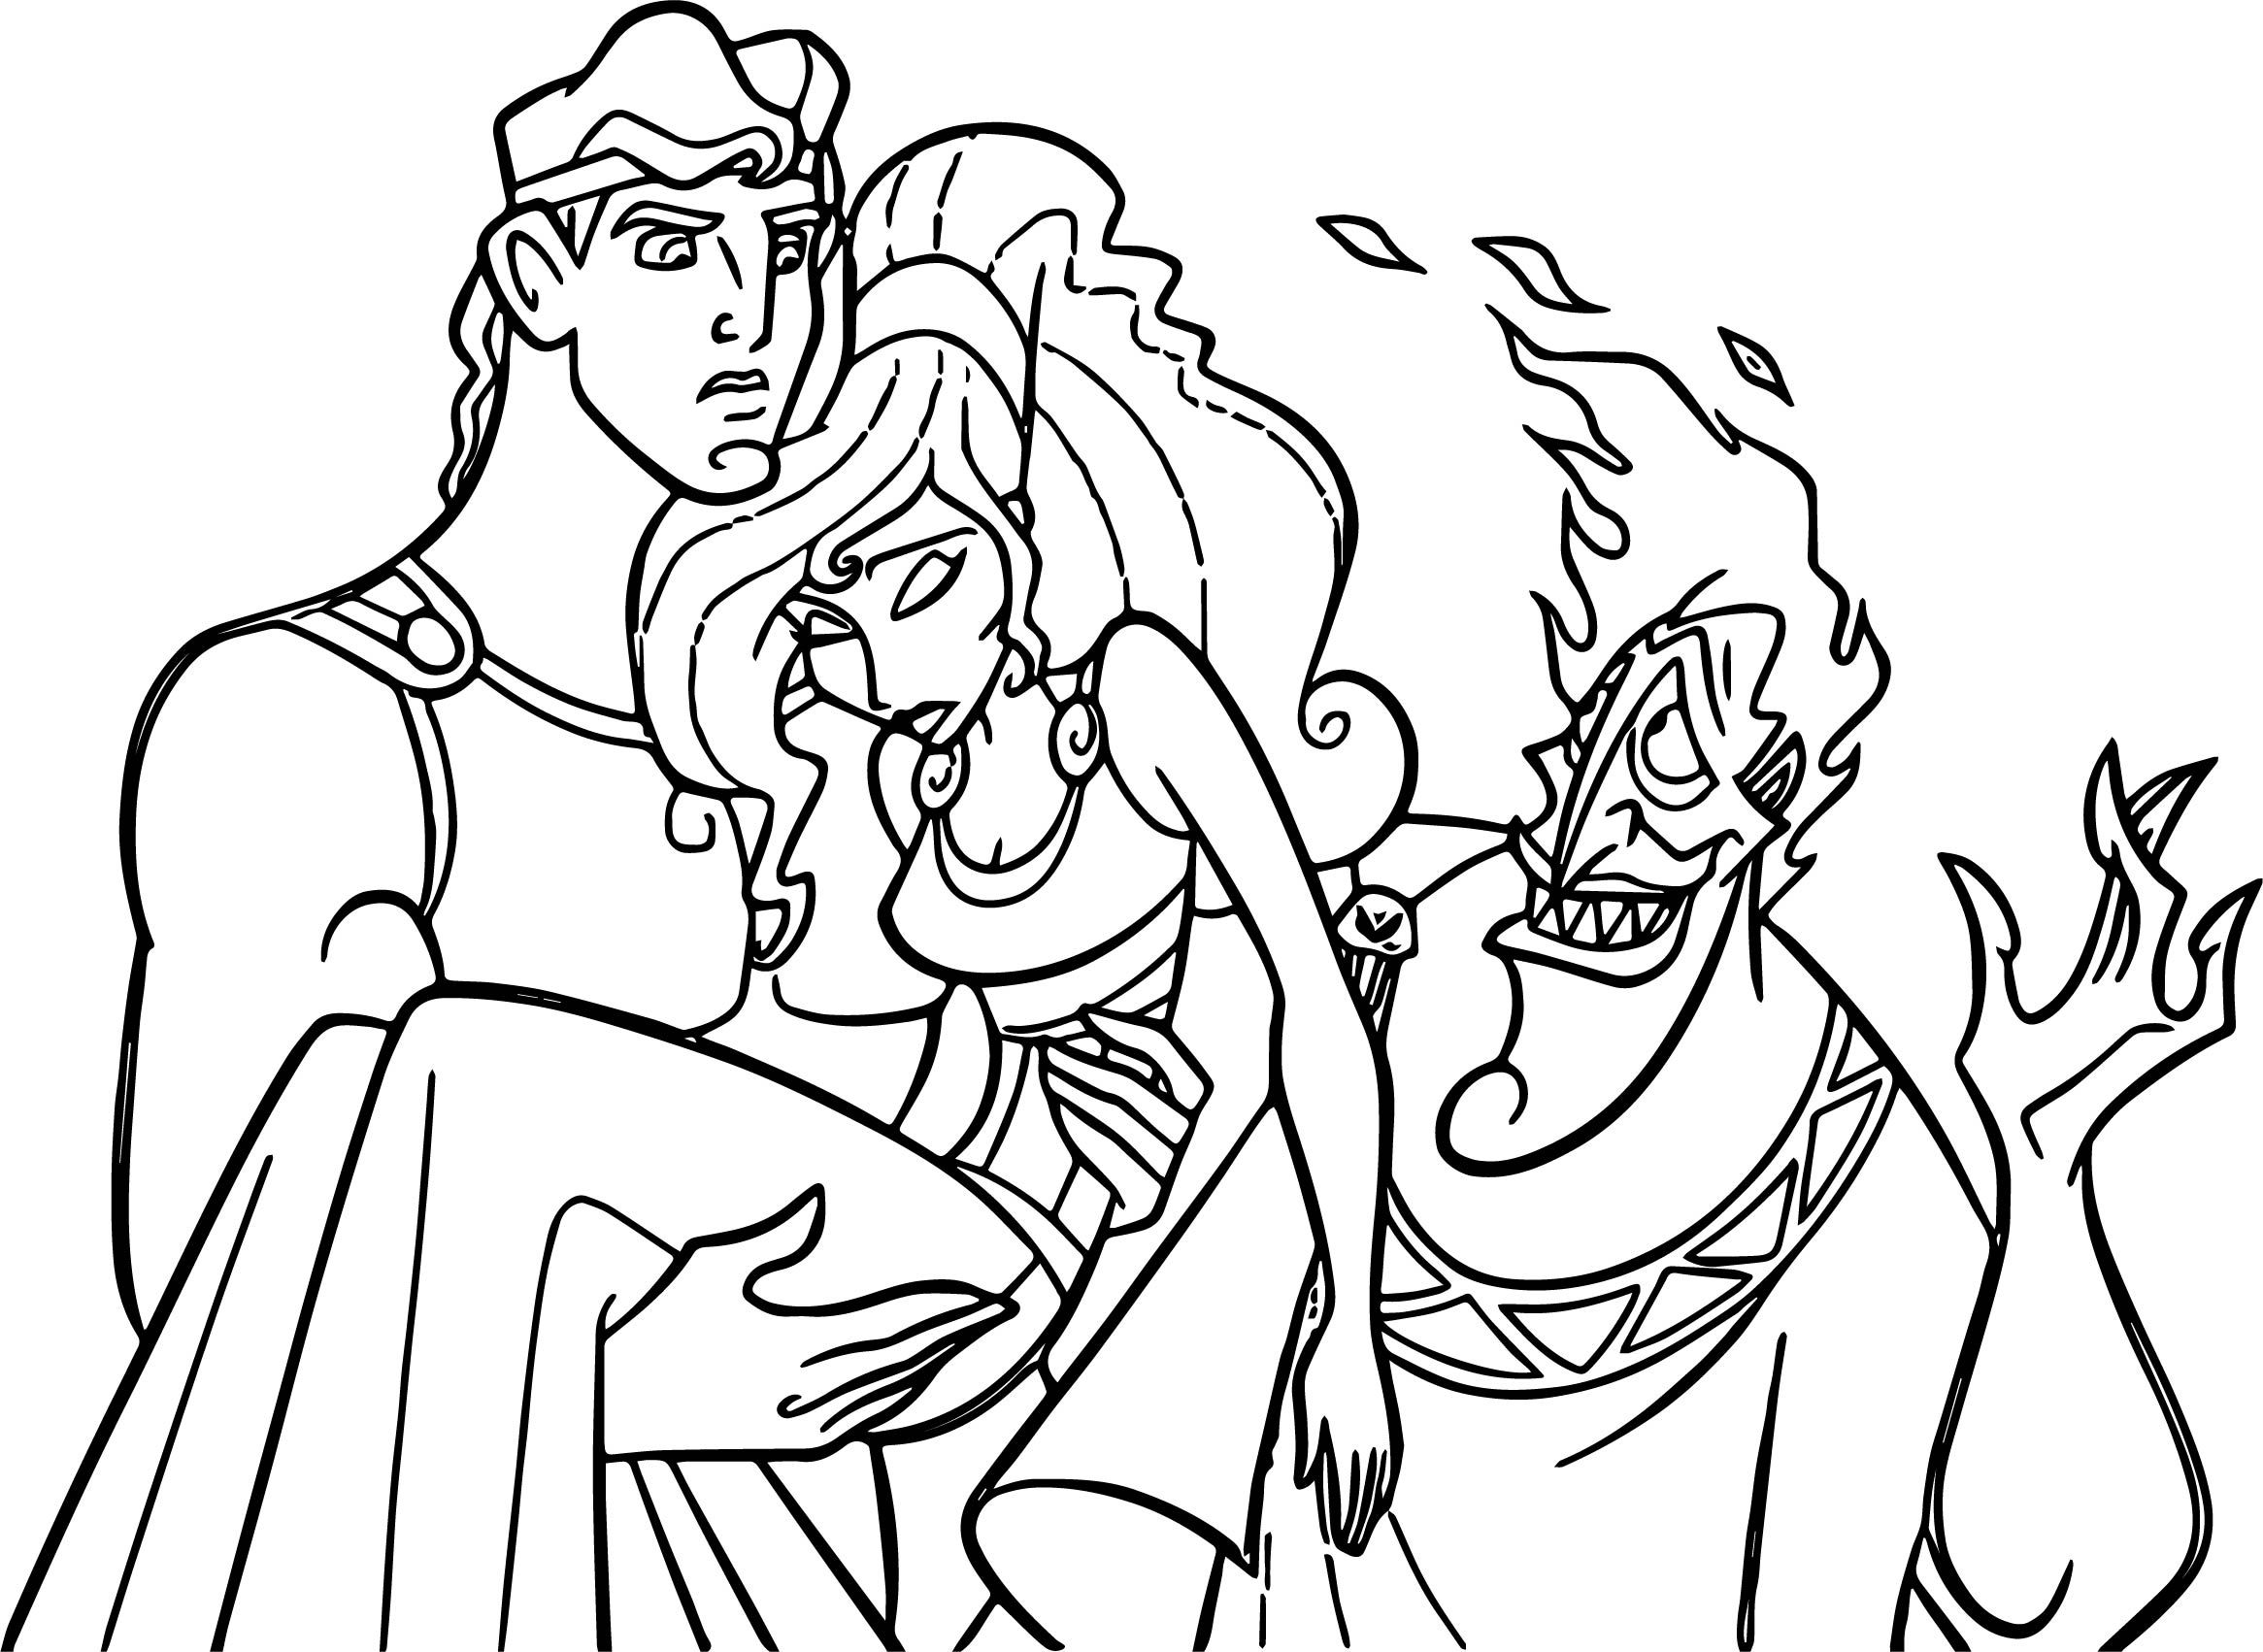 Hercules Meg Hades Coloring Pages Coloring Pages Staff Magic Coloring Pages For Boys